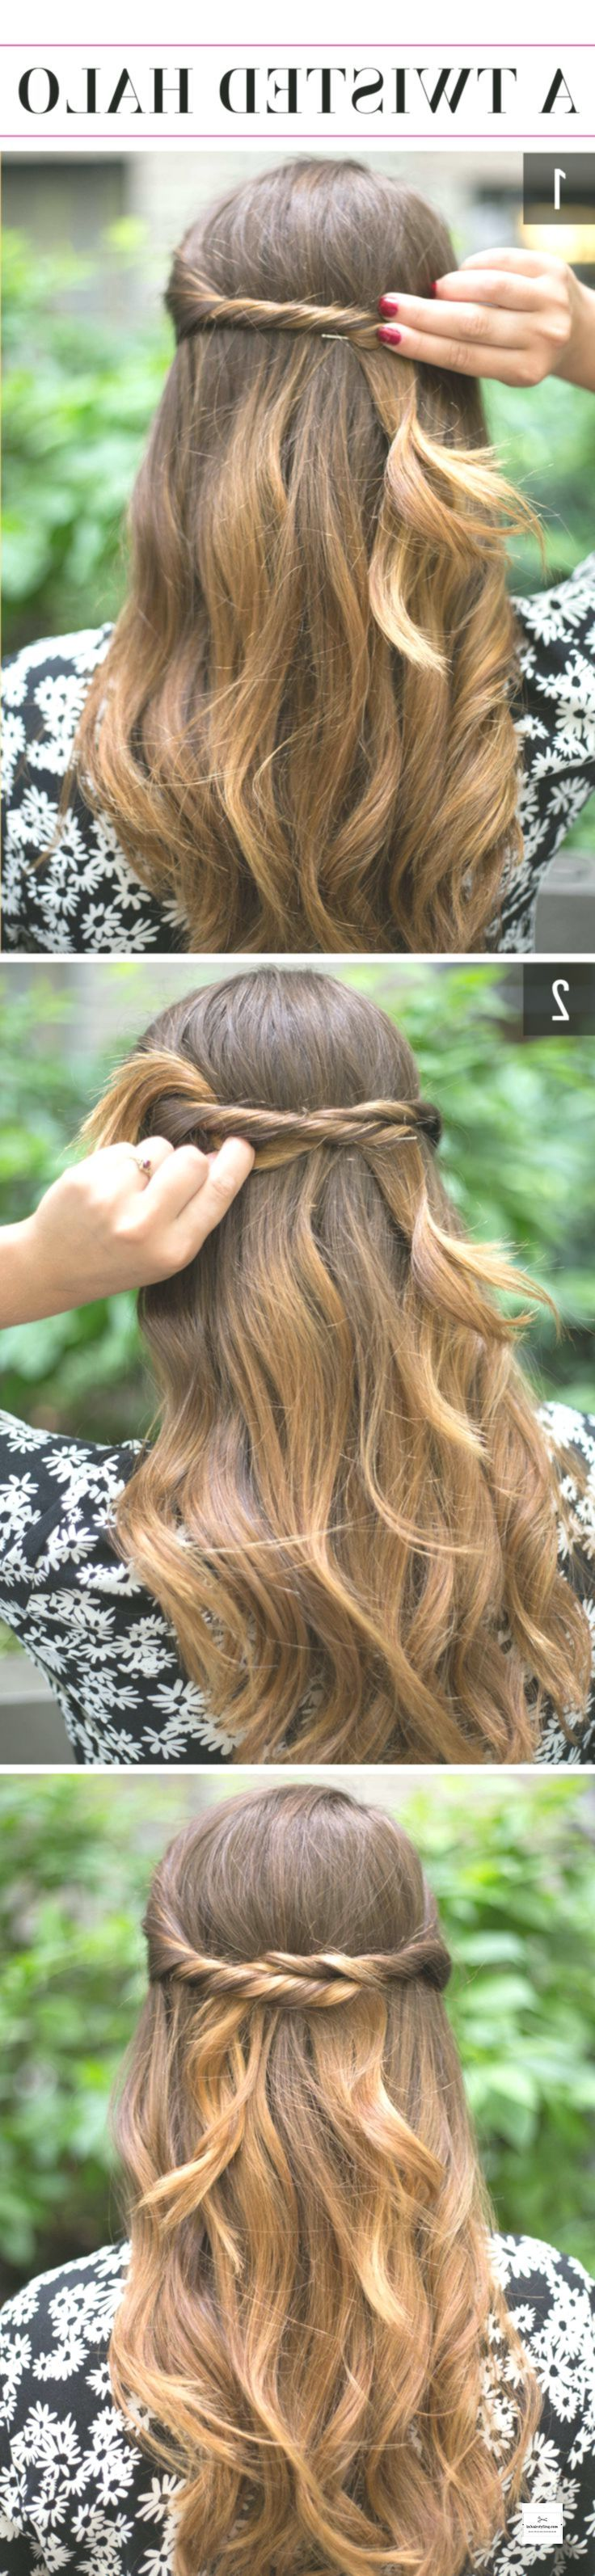 15 Super-Easy Hairstyles for Lazy Girls Who Can't Even - #girls #hairstyles #super - #new